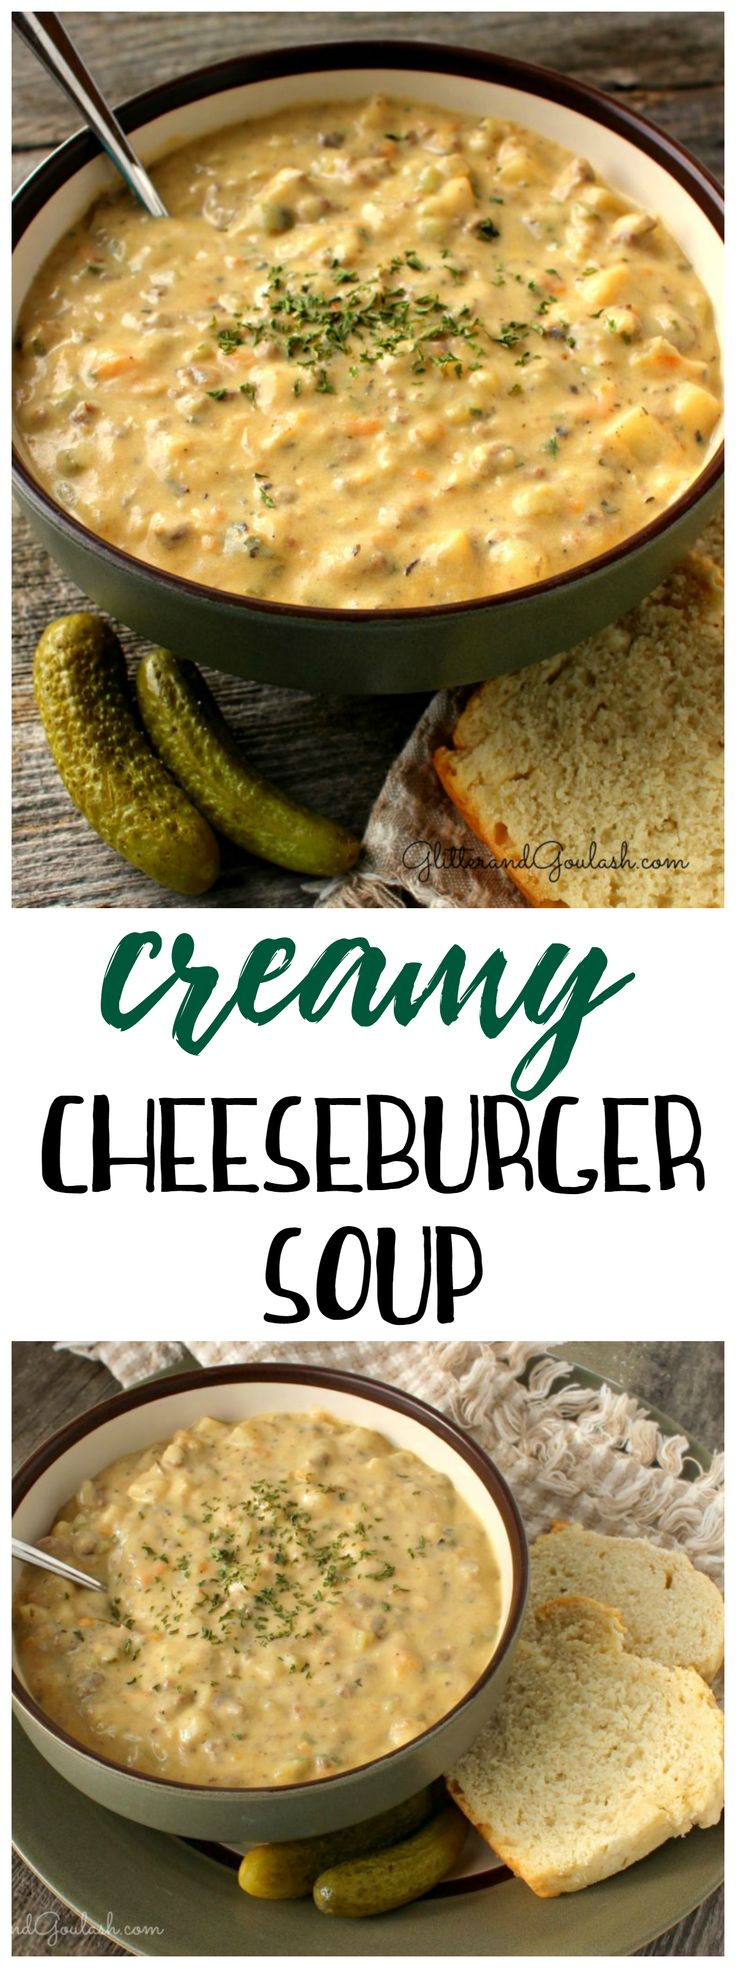 We make this creamy cheeseburger soup at least once a week in the winter! Best comfort food ever. Definitely a recipe to save for dinner. Love the pickles (Best Ever Soup)